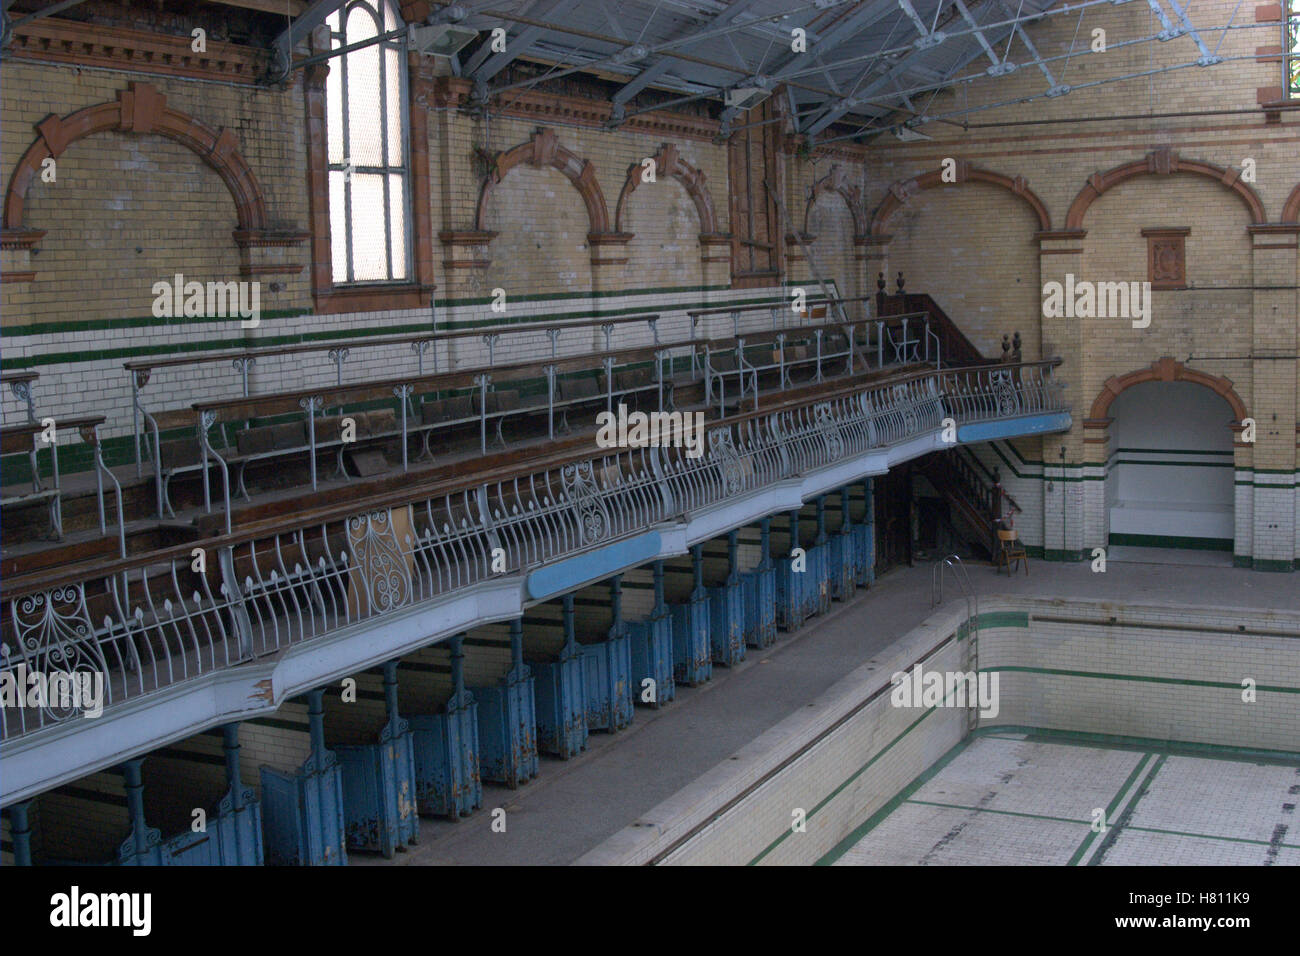 Pool, Changing Cubicles and Balcony, Victoria Baths, Manchester - Stock Image